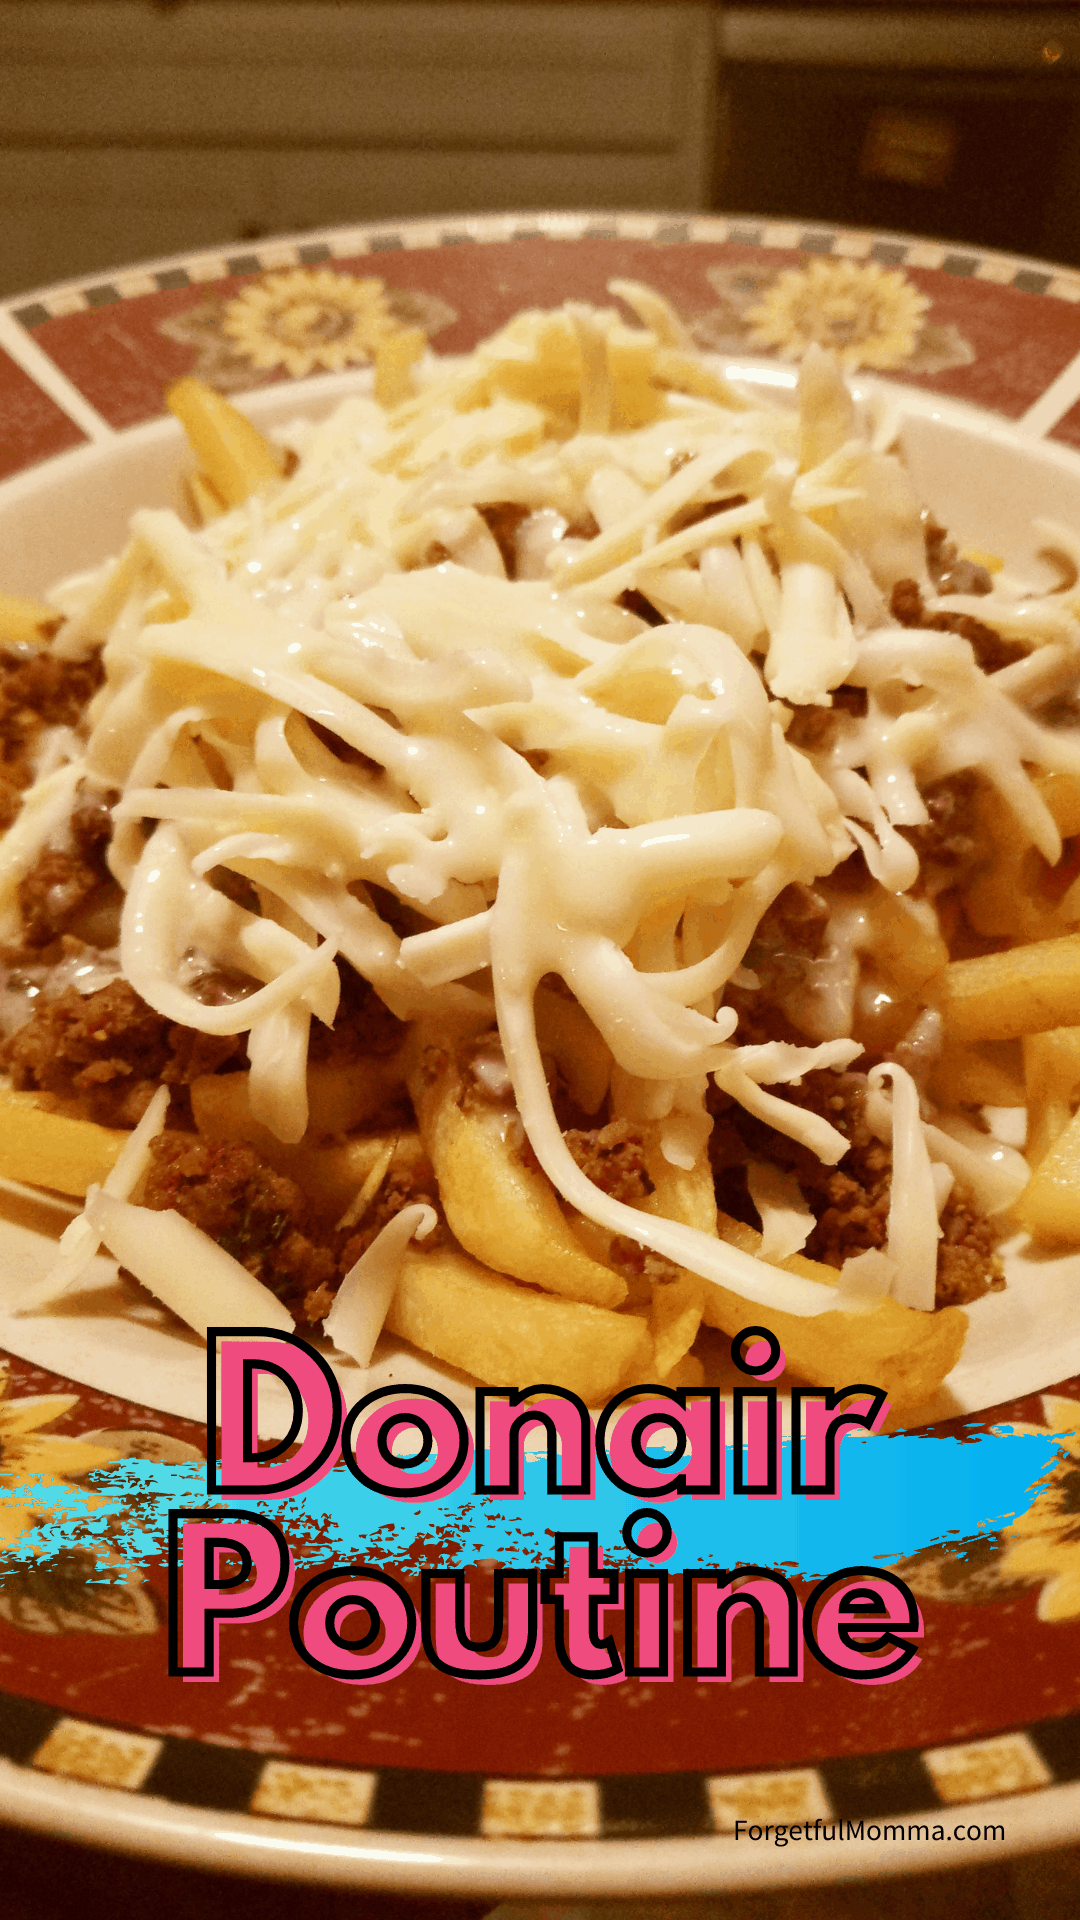 Donair poutine with text overlay